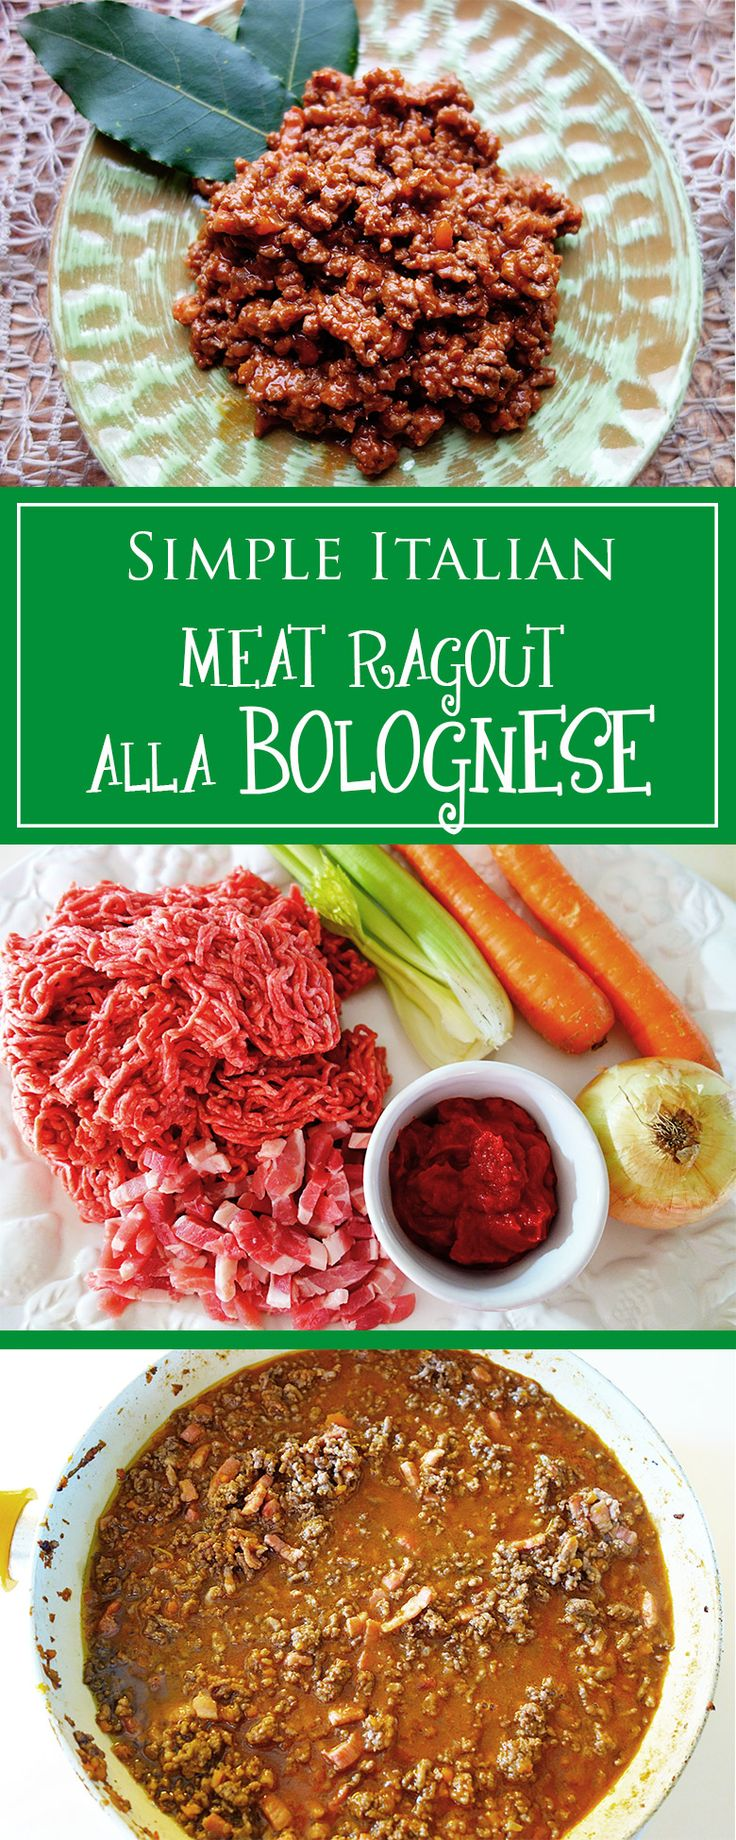 Meat Ragout alla Bolognese - THE perfect family recipe! Here you can find a simple & most of all irresistably delicious version of the italian classic dish. 🍝🇮🇹❤️ | cucina-con-amore.com